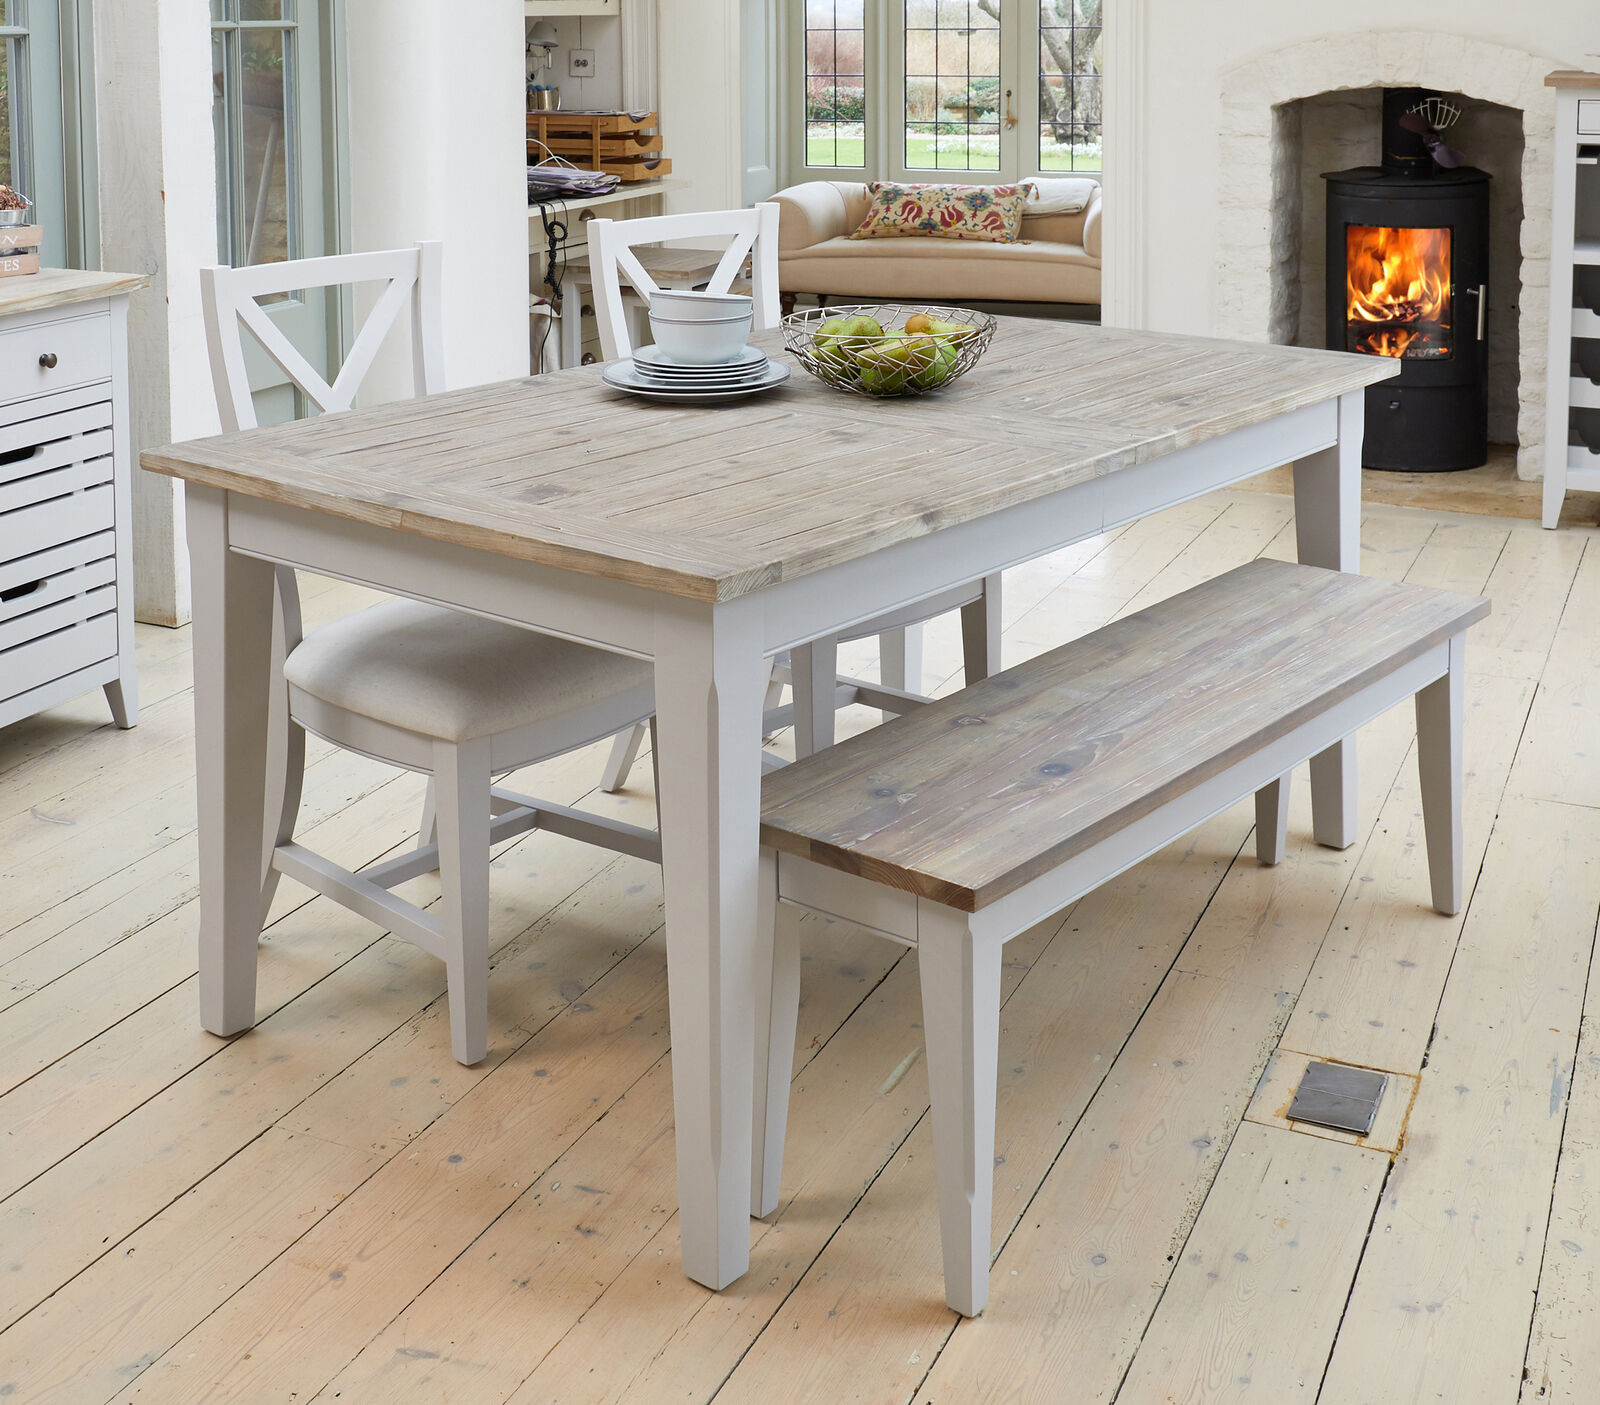 Dining Tables Benches: Signature Solid Wood Extending Dining Table 8 Seater Grey